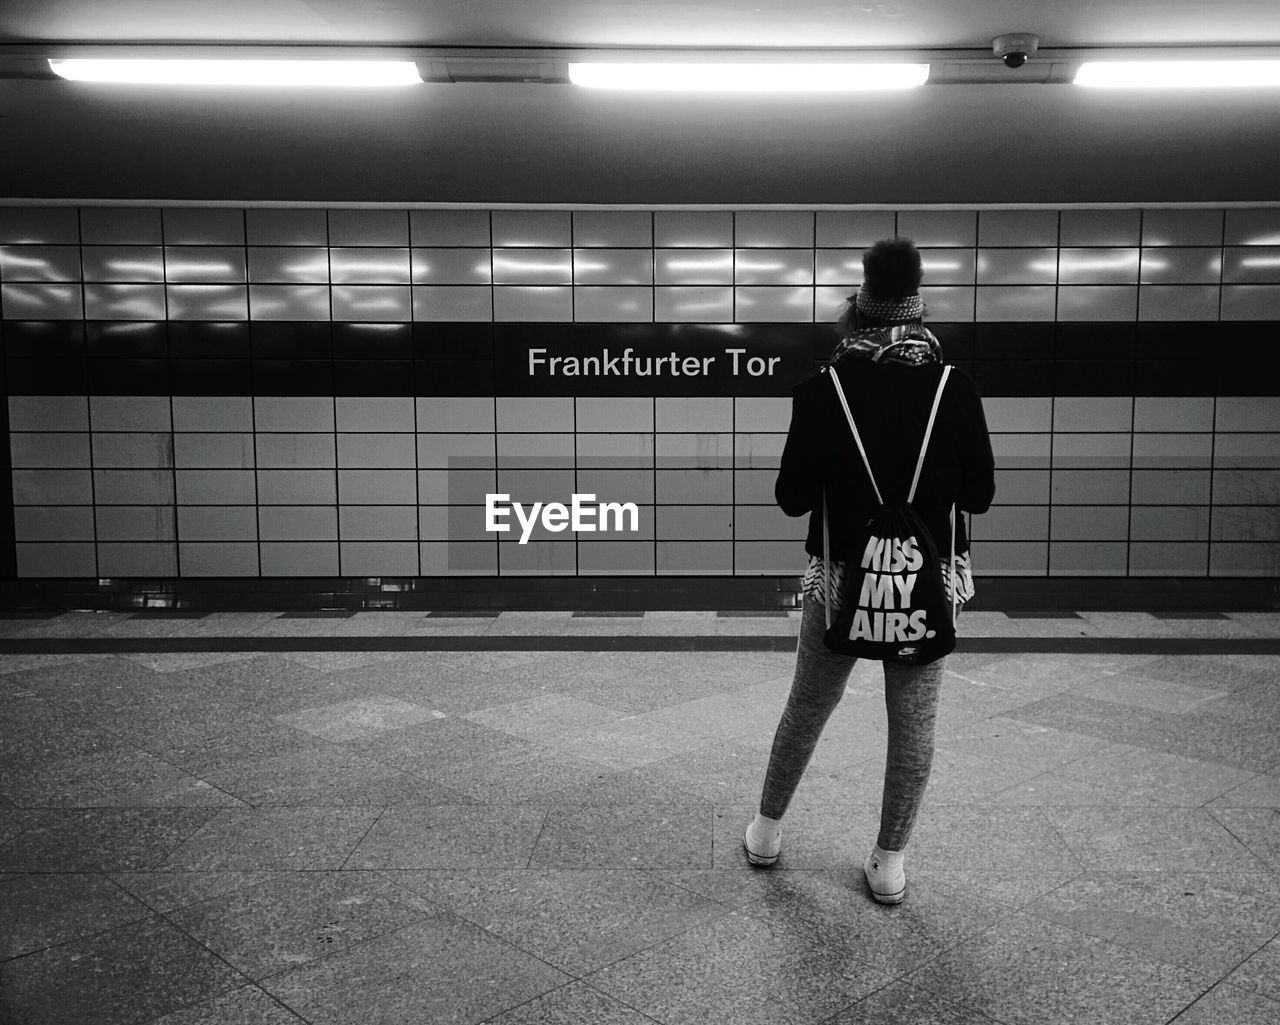 illuminated, full length, text, real people, communication, tile, subway station, one person, indoors, men, adult, people